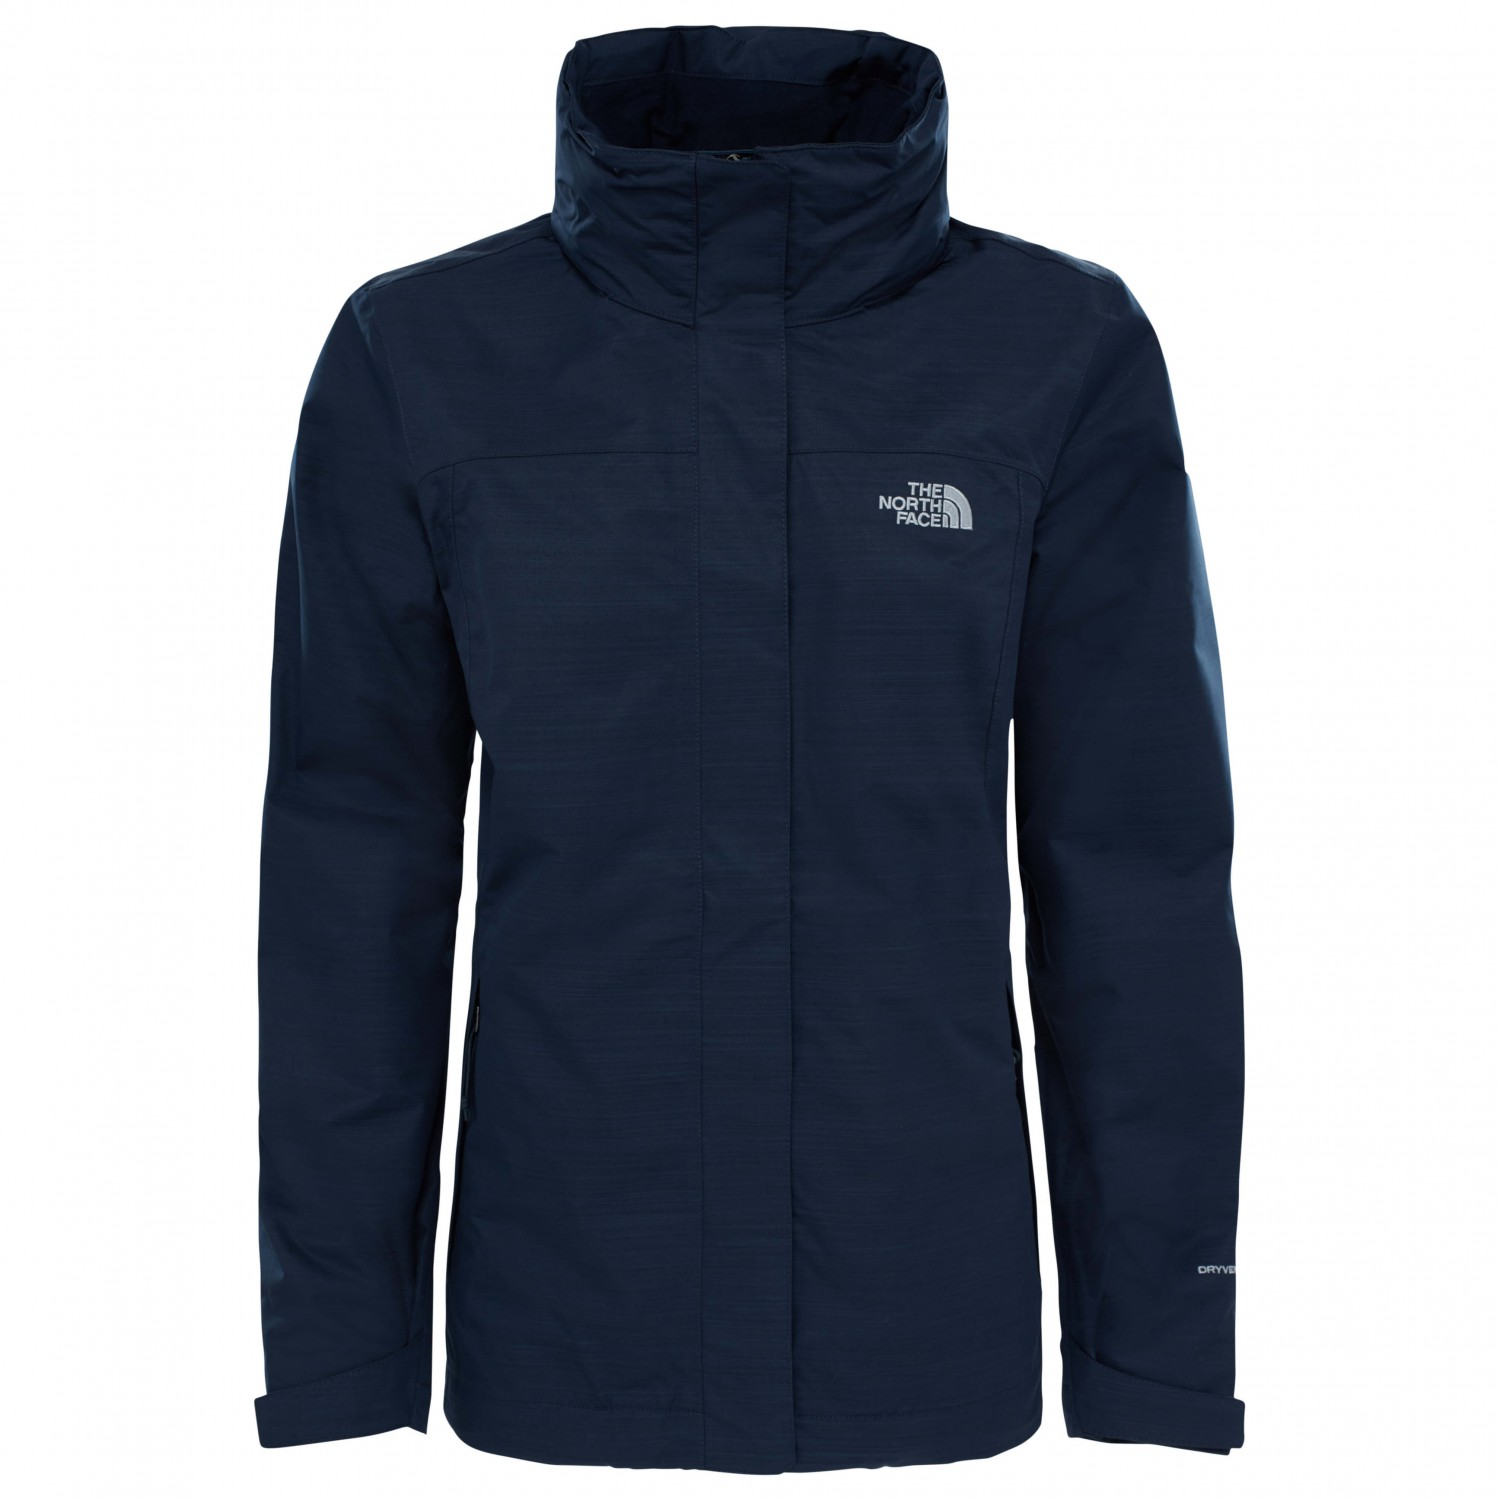 87db3dc76 The North Face Lowland Jacket - Waterproof Jacket Women's   Buy ...